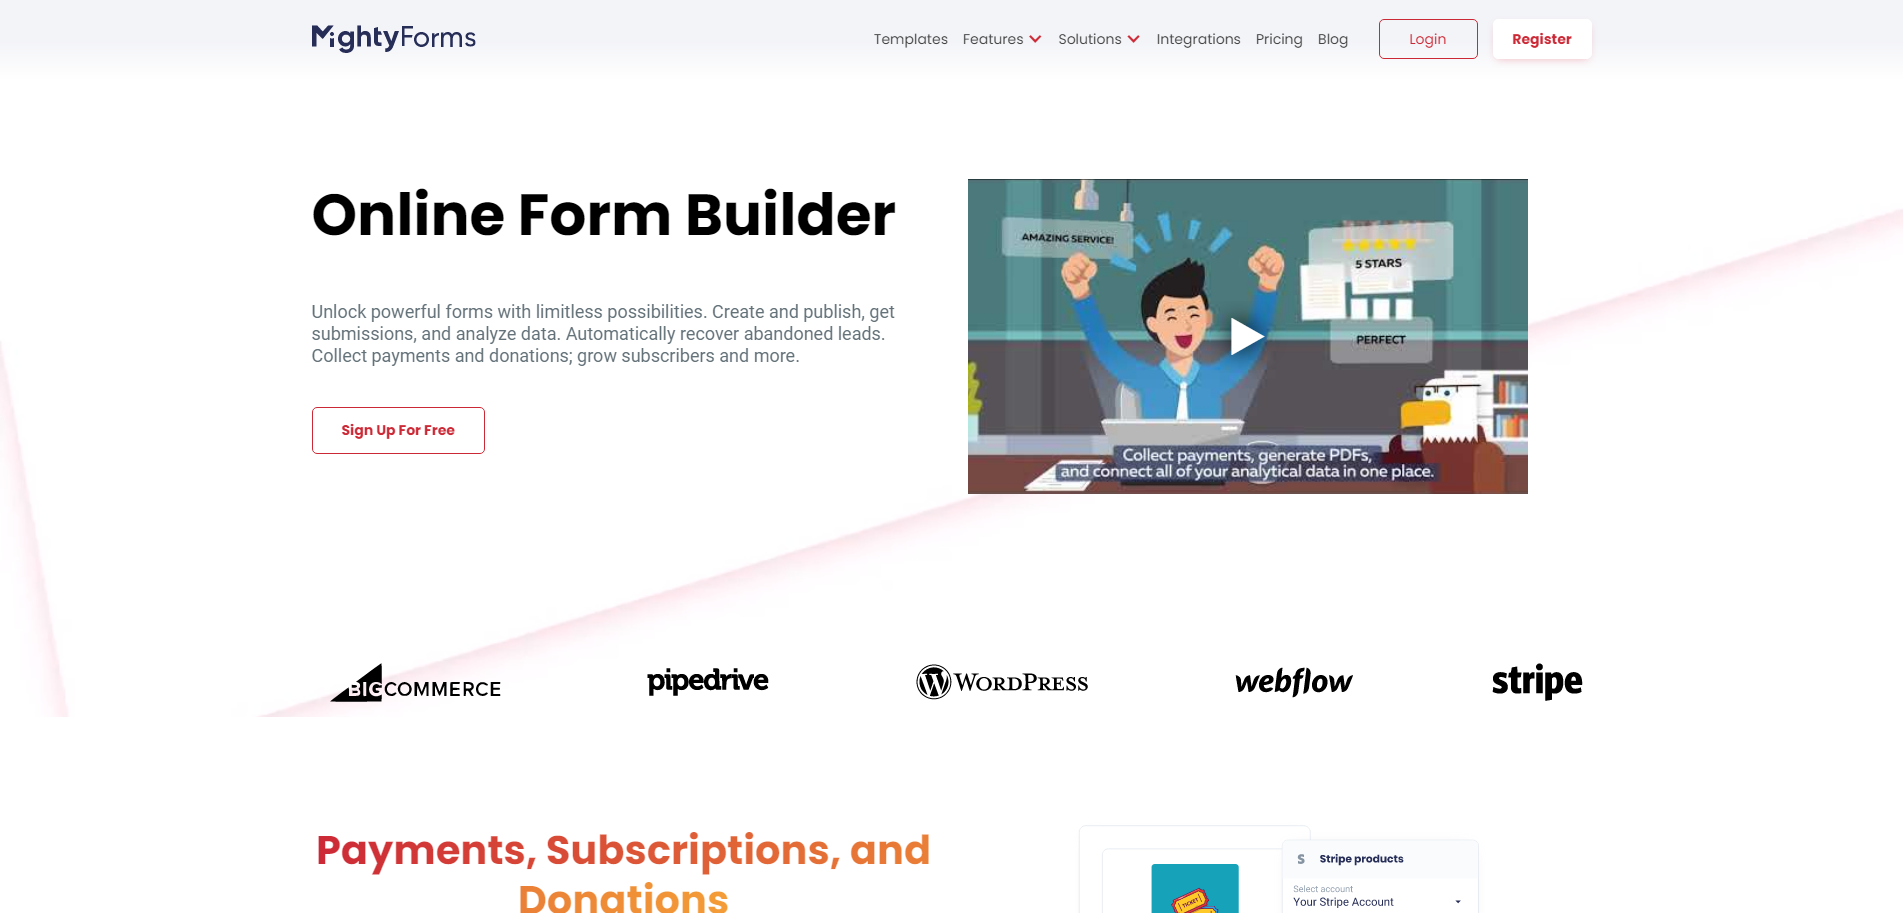 MightyForms Home Page screenshot